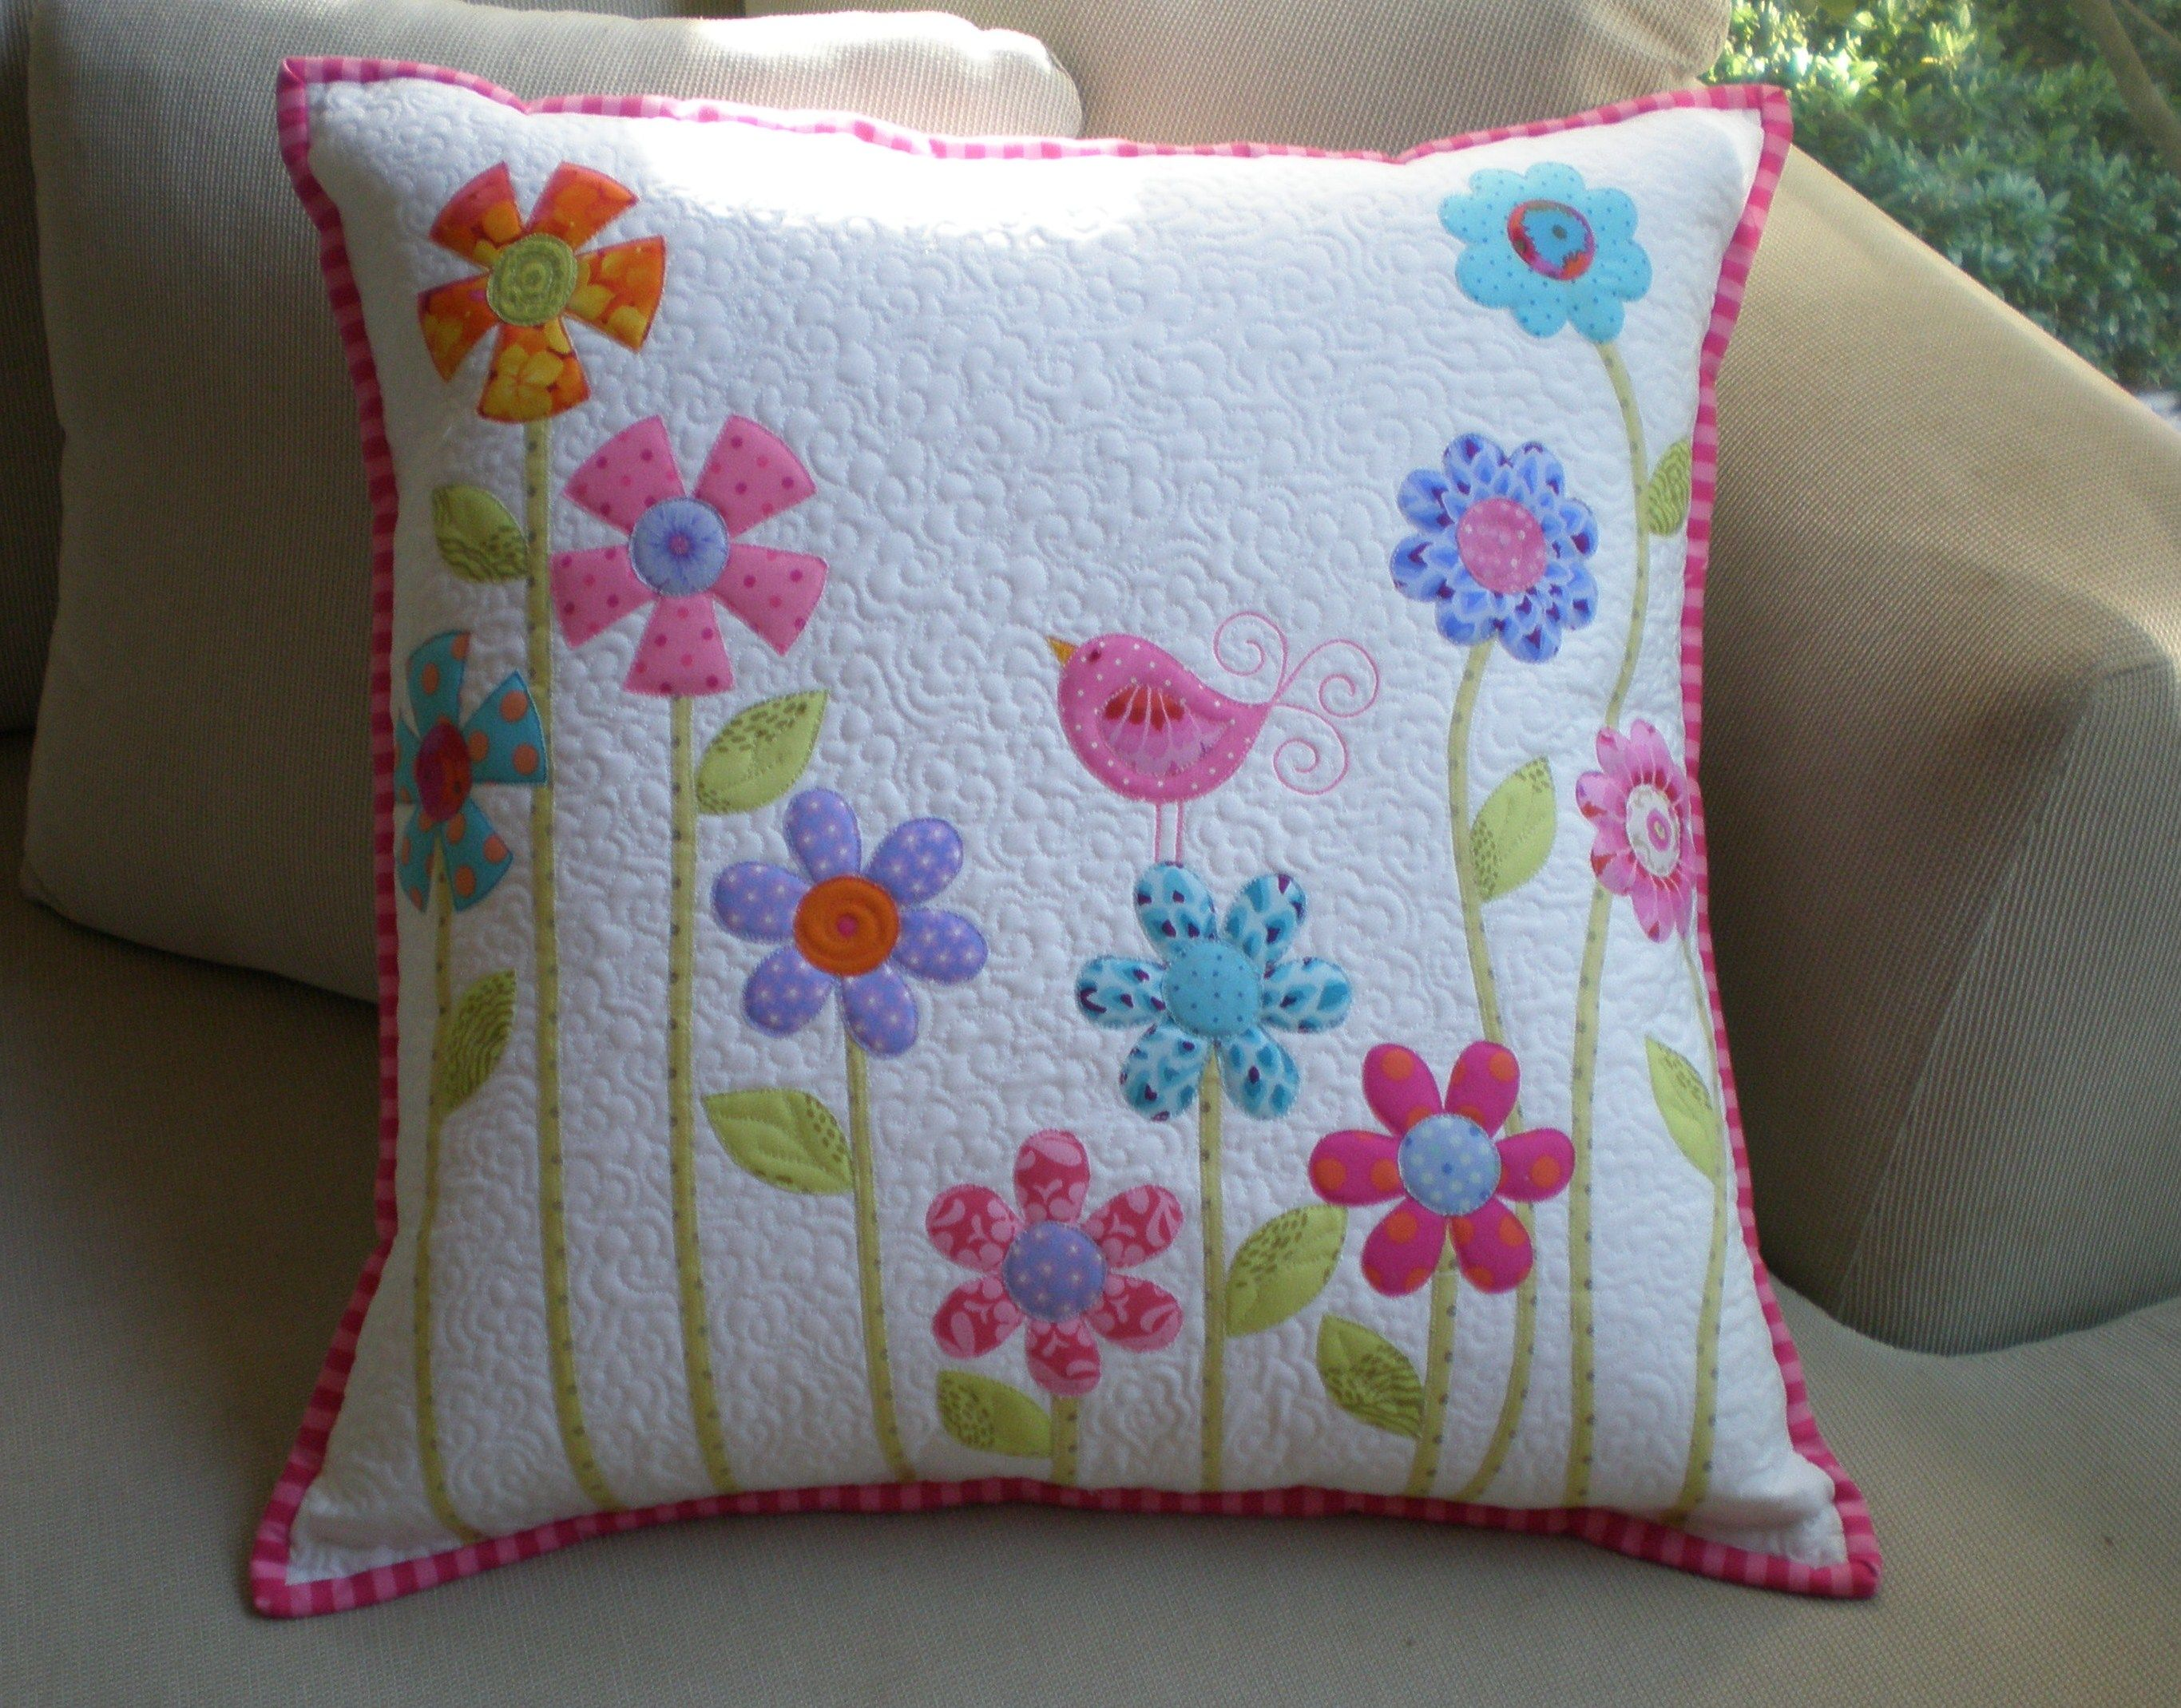 Flower garden pillow tutorial . sewing pillows and pillow